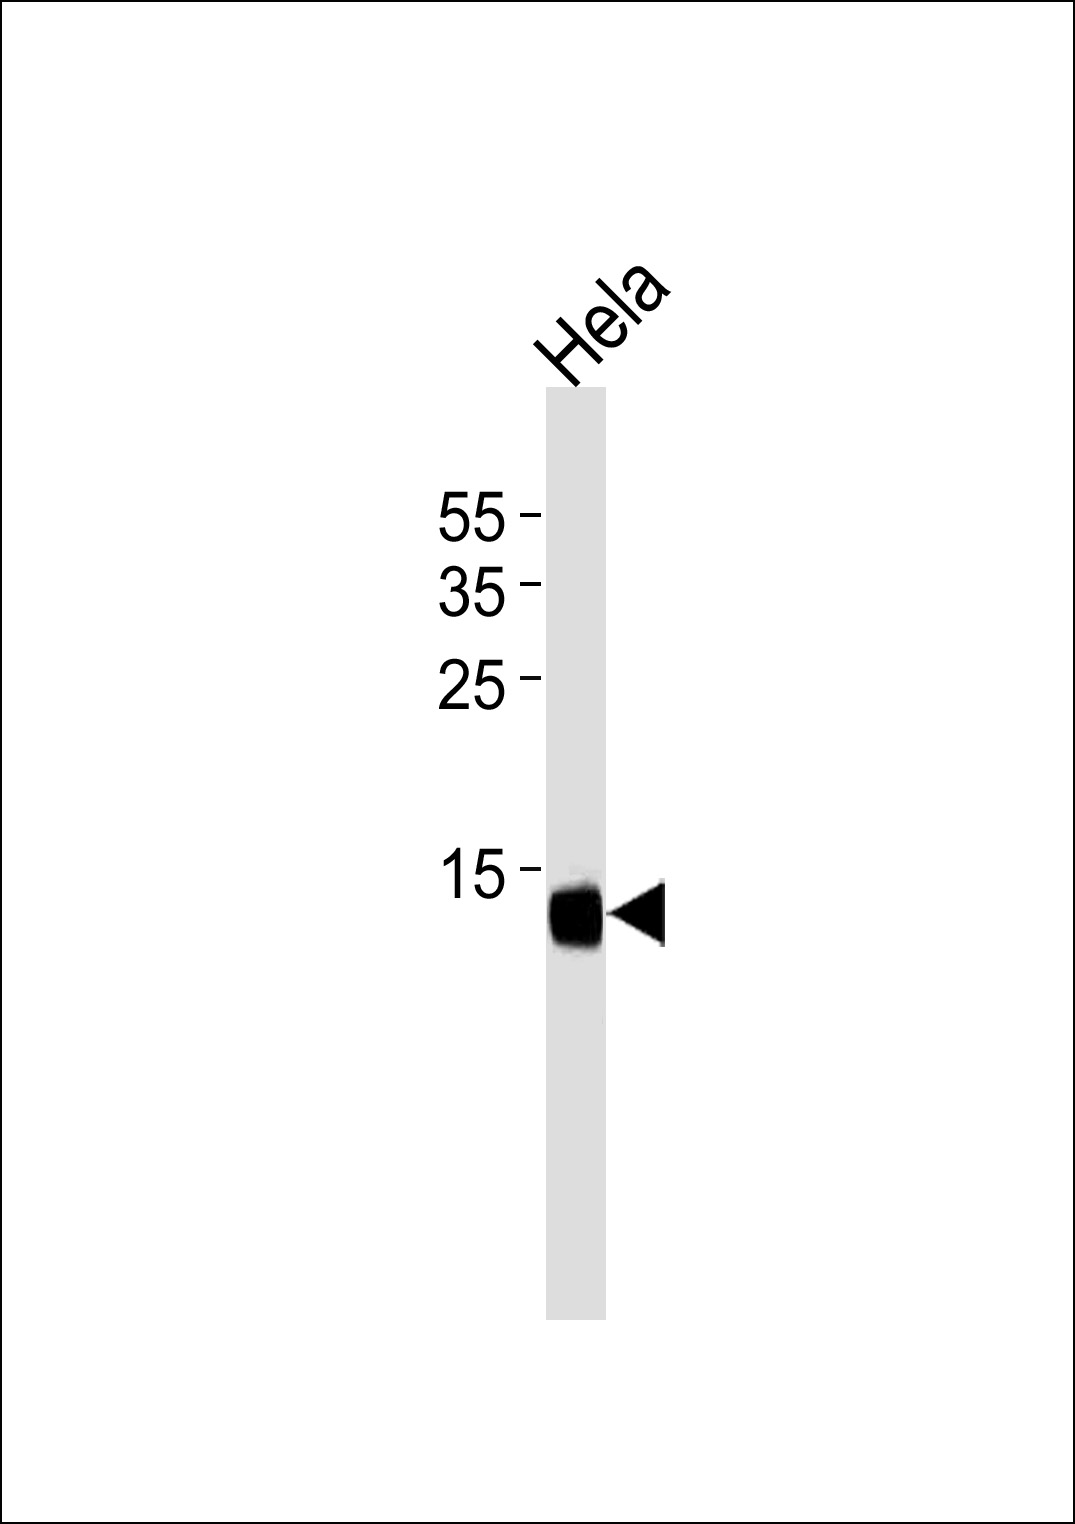 CDA Antibody western blot of HeLa cell line lysates (35 ug/lane). The CDA antibody detected the CDA protein (arrow).